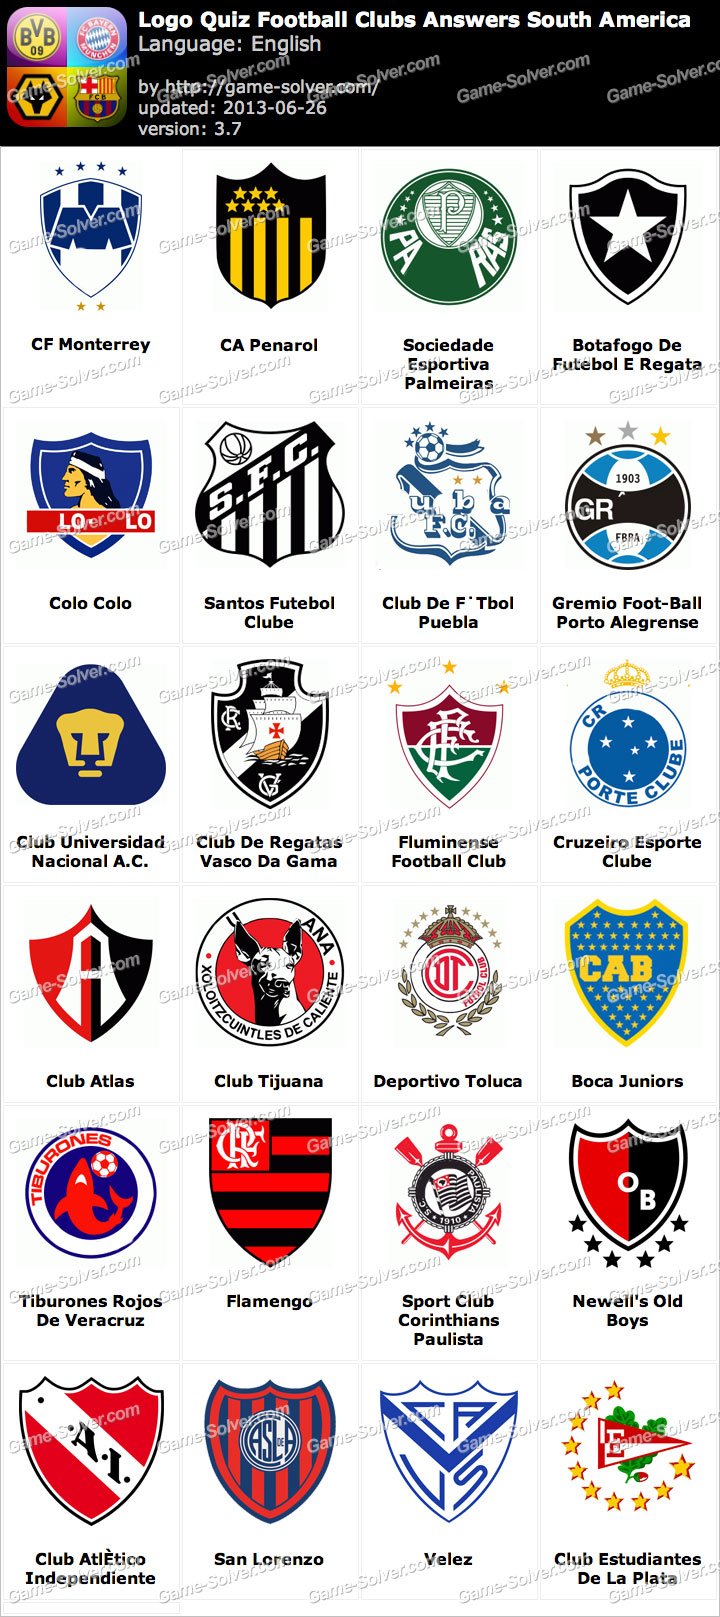 Logo Quiz Football Clubs Answers South America